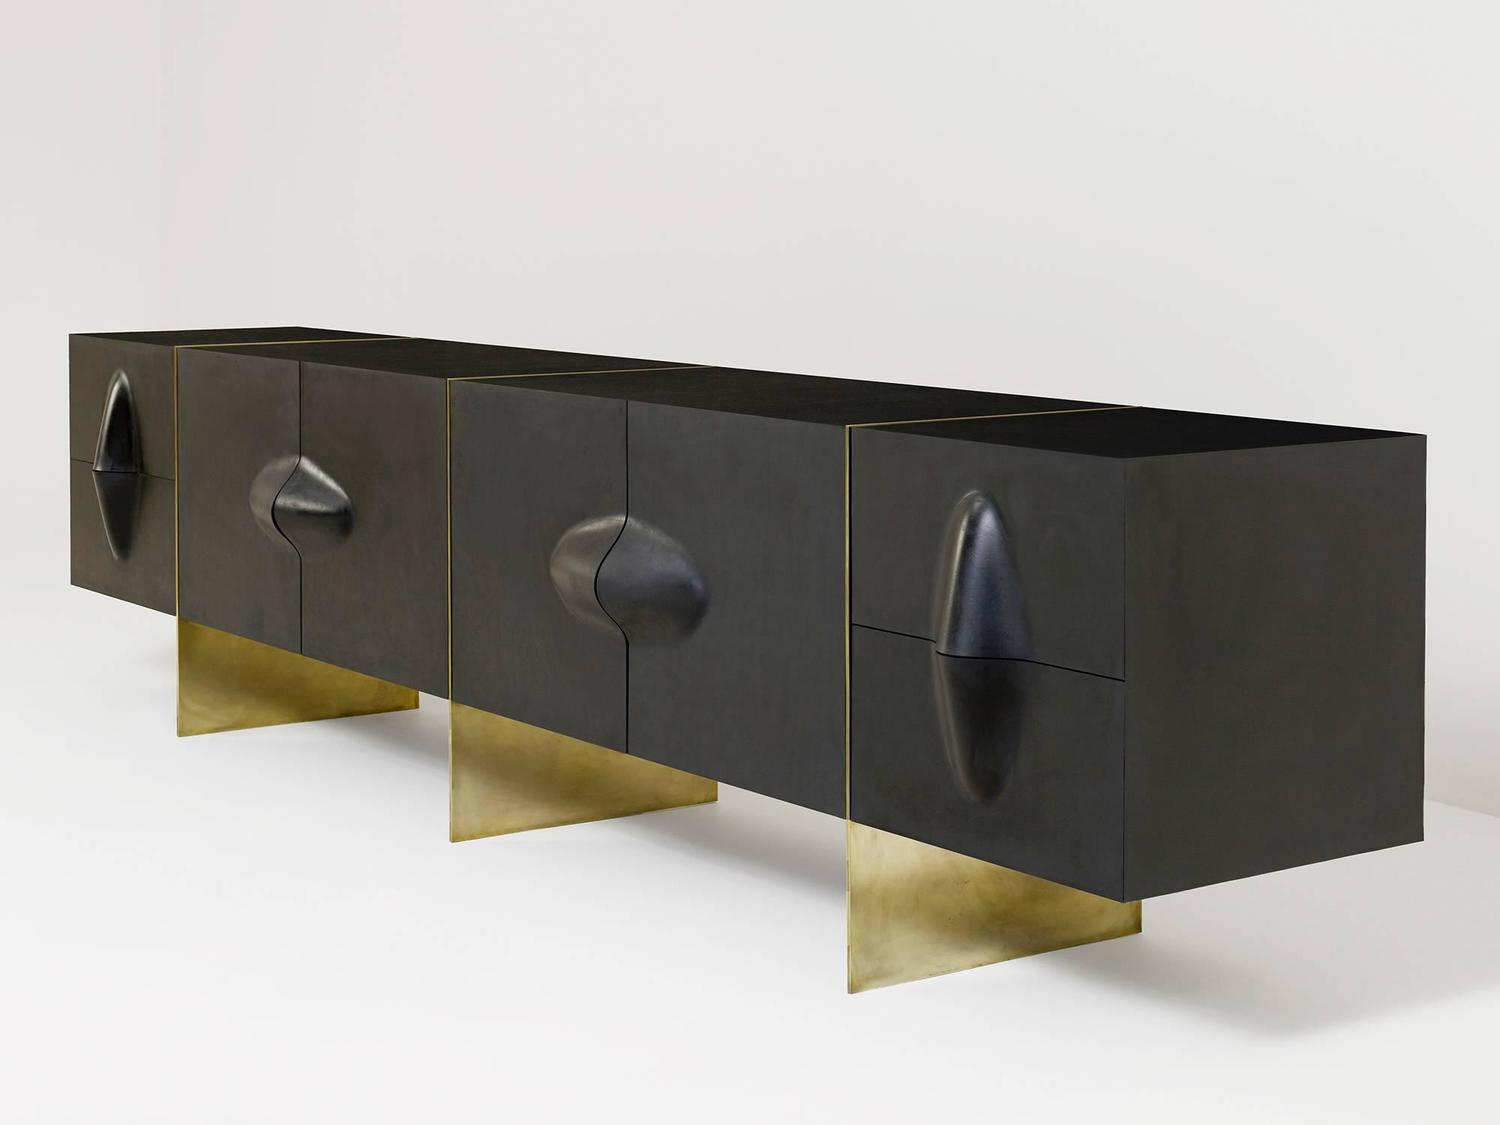 large brian thoreen rubber and brass credenza or sideboard for sale at